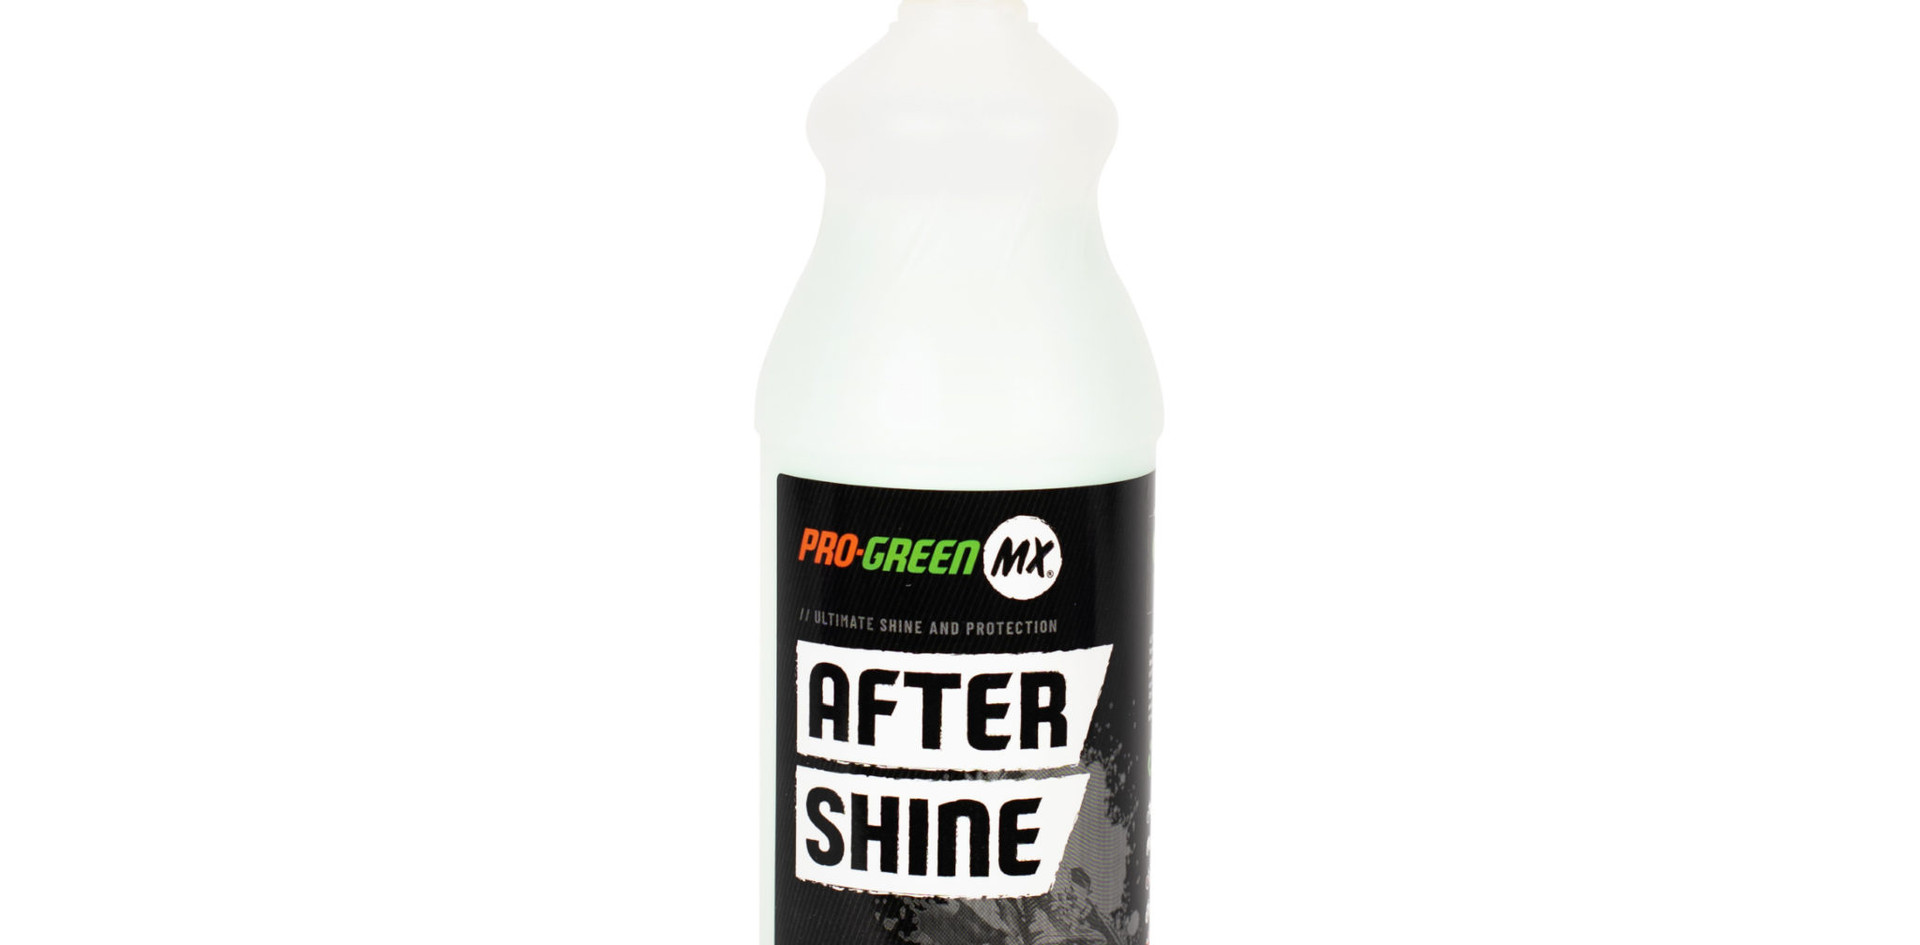 Pro Green MX After Shine